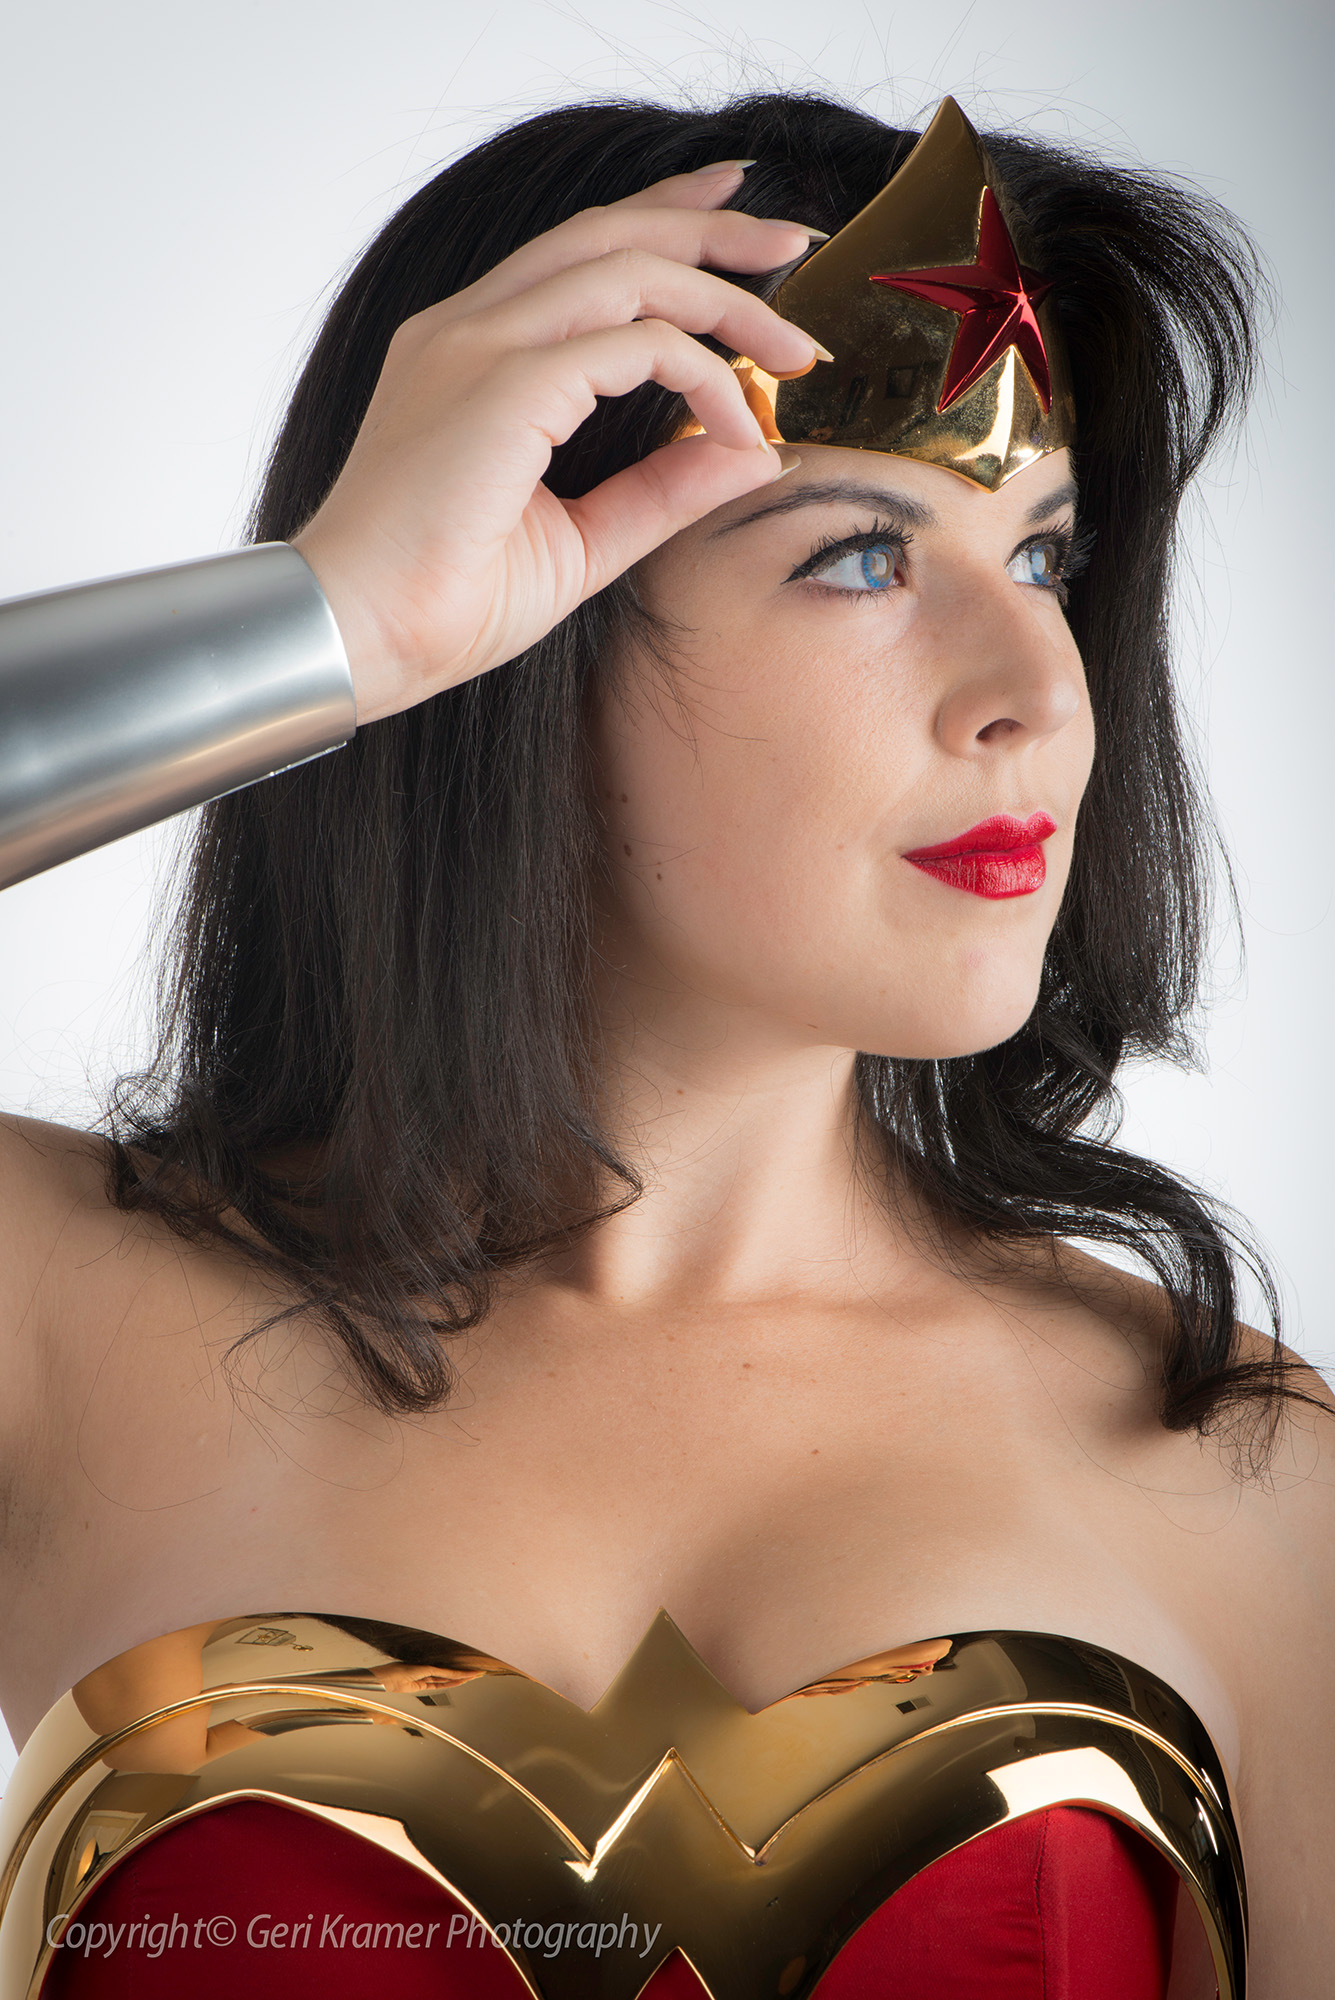 Wonder_Woman-Geri_Kramer (9)